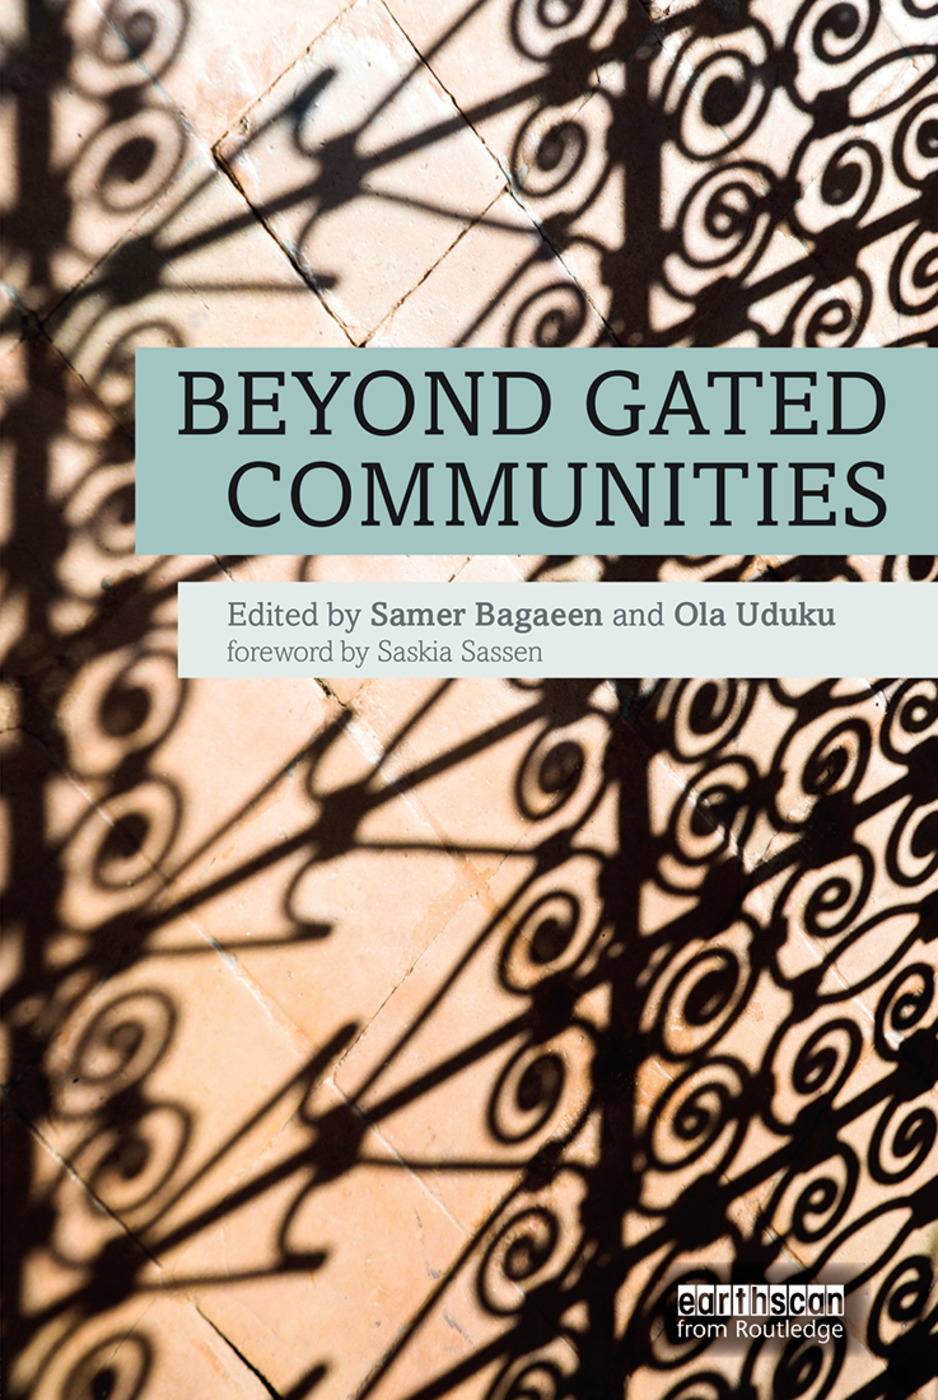 Beyond Gated Communities book cover